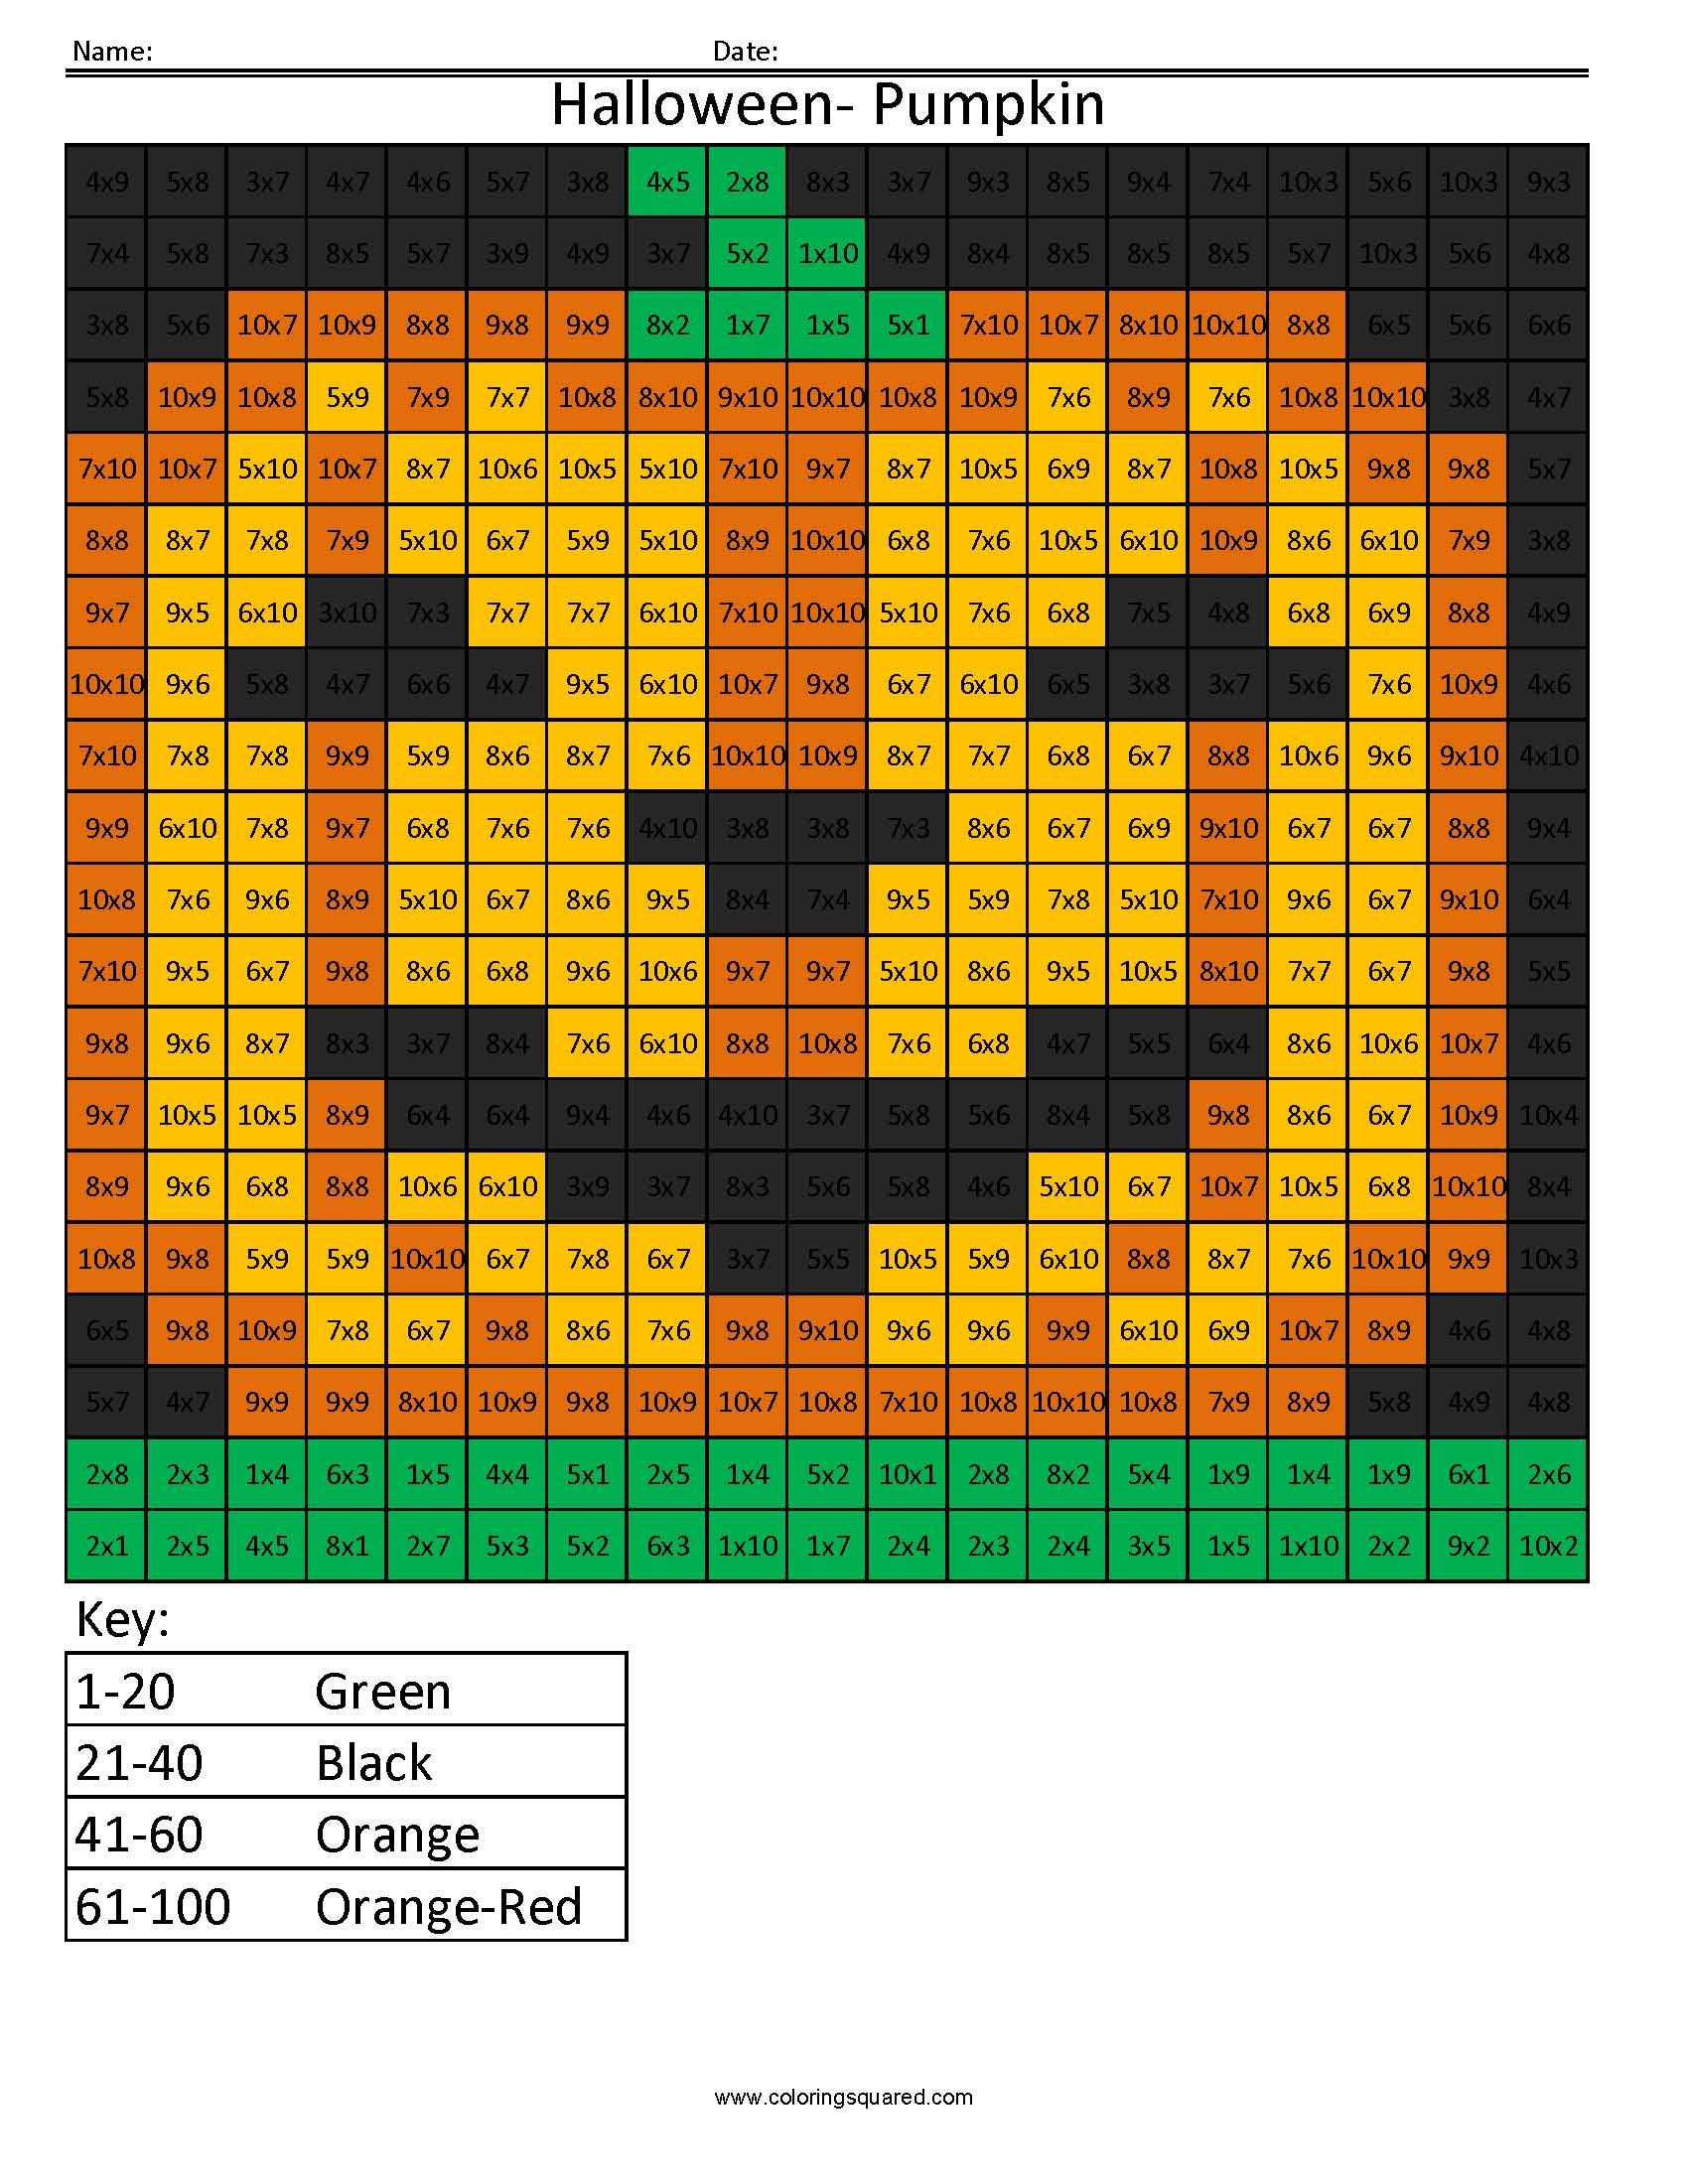 Halloween Pumpkin- Holiday Multiplication - Coloring Squared